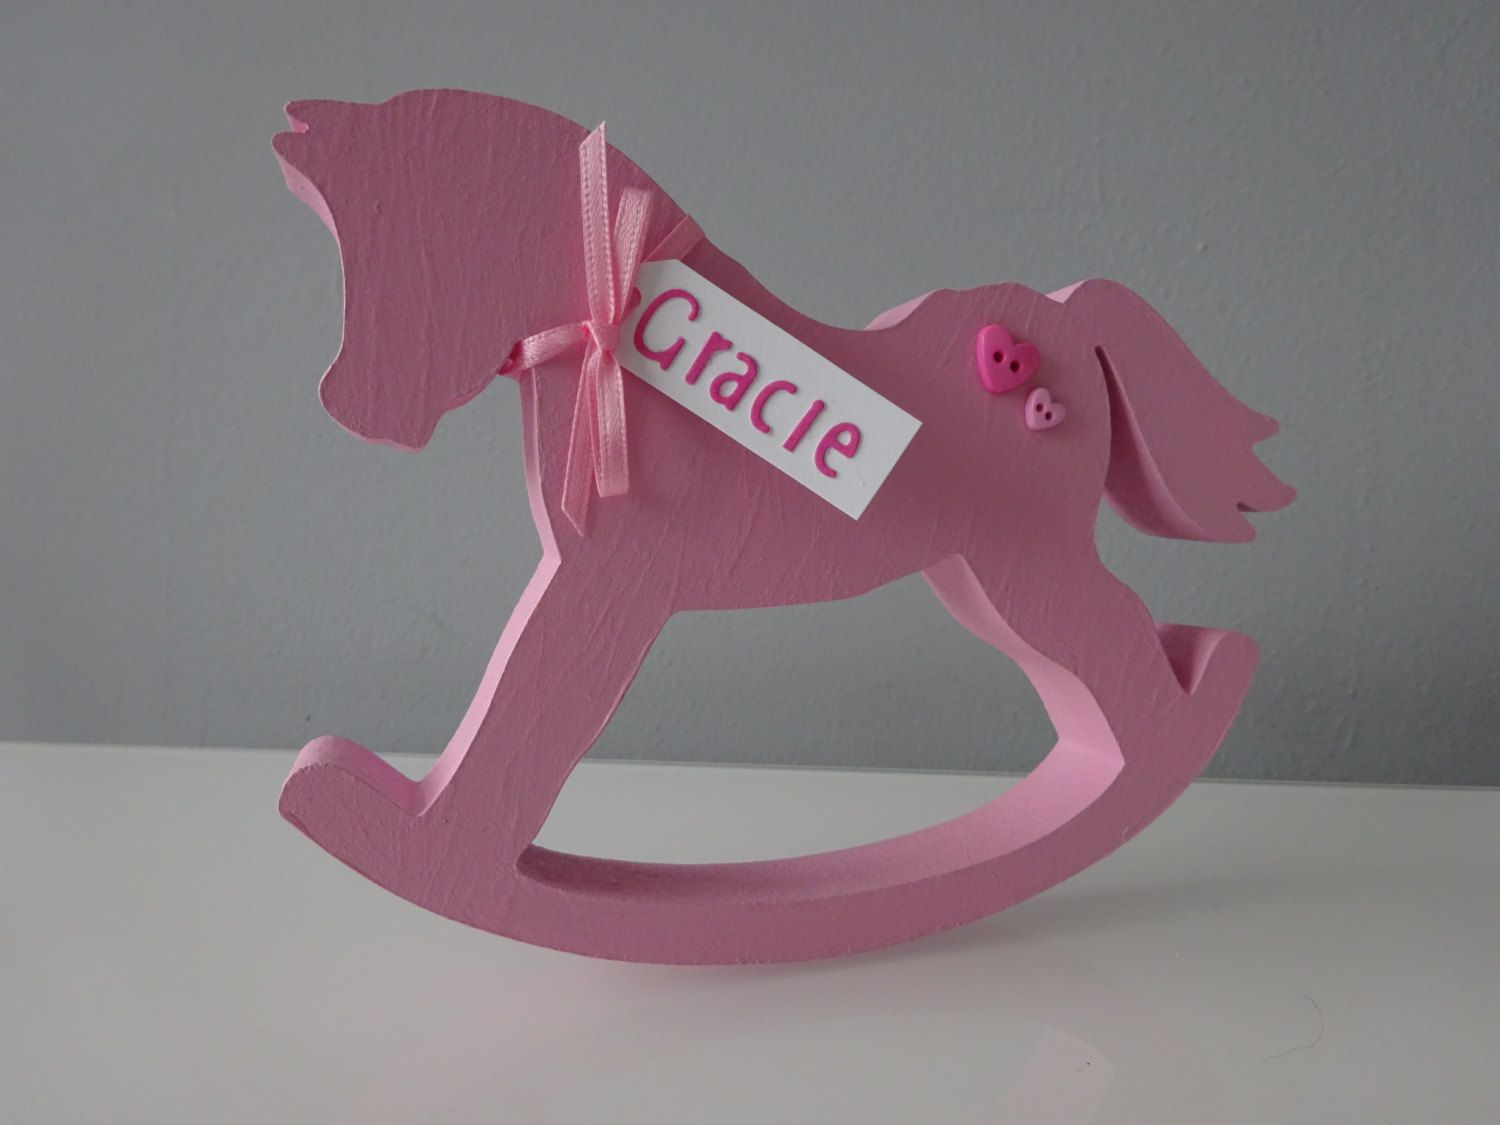 Personalised new baby gift rocking horse ornament baby boy gift personalised new baby gift rocking horse ornament baby boy gift baby girl gift baby rocking horse newborn baby gifts baby shower gift negle Gallery